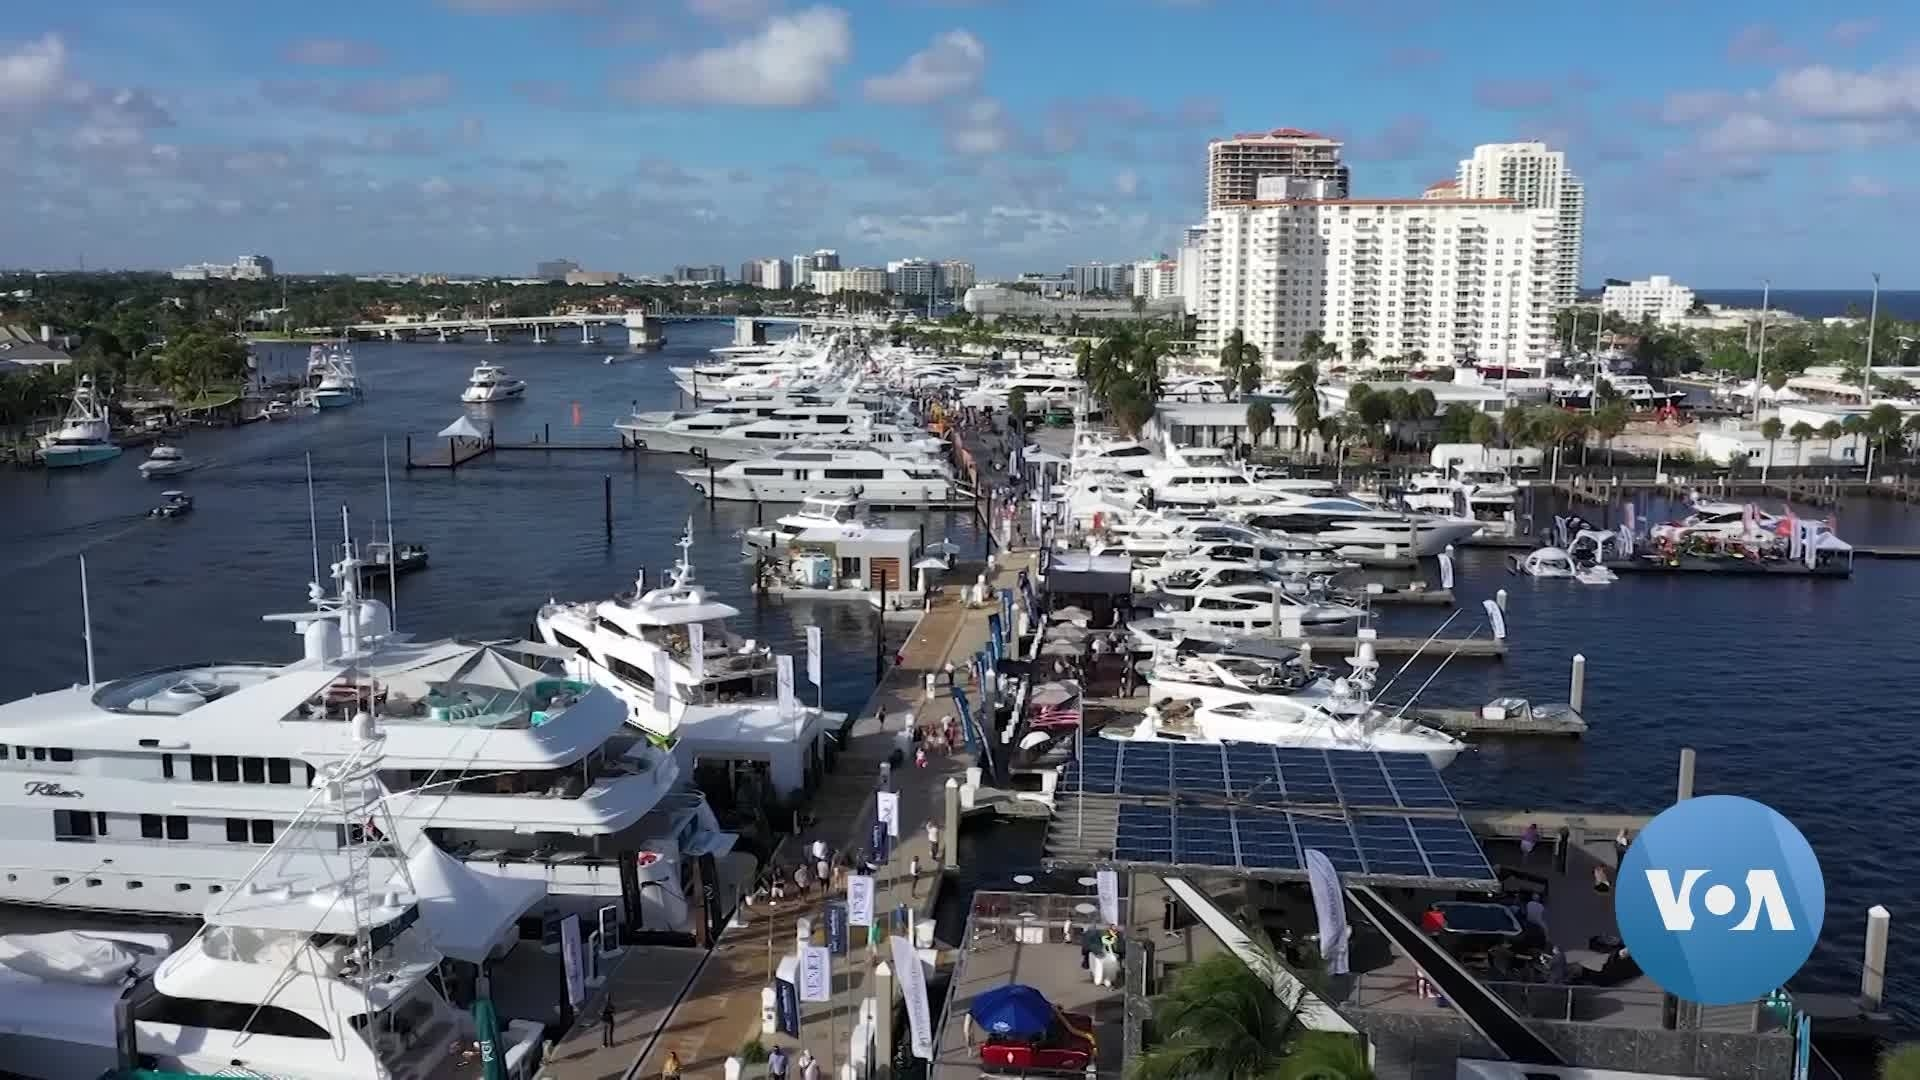 Coronavirus Pandemic Triggers Spike in Florida Boat Sales